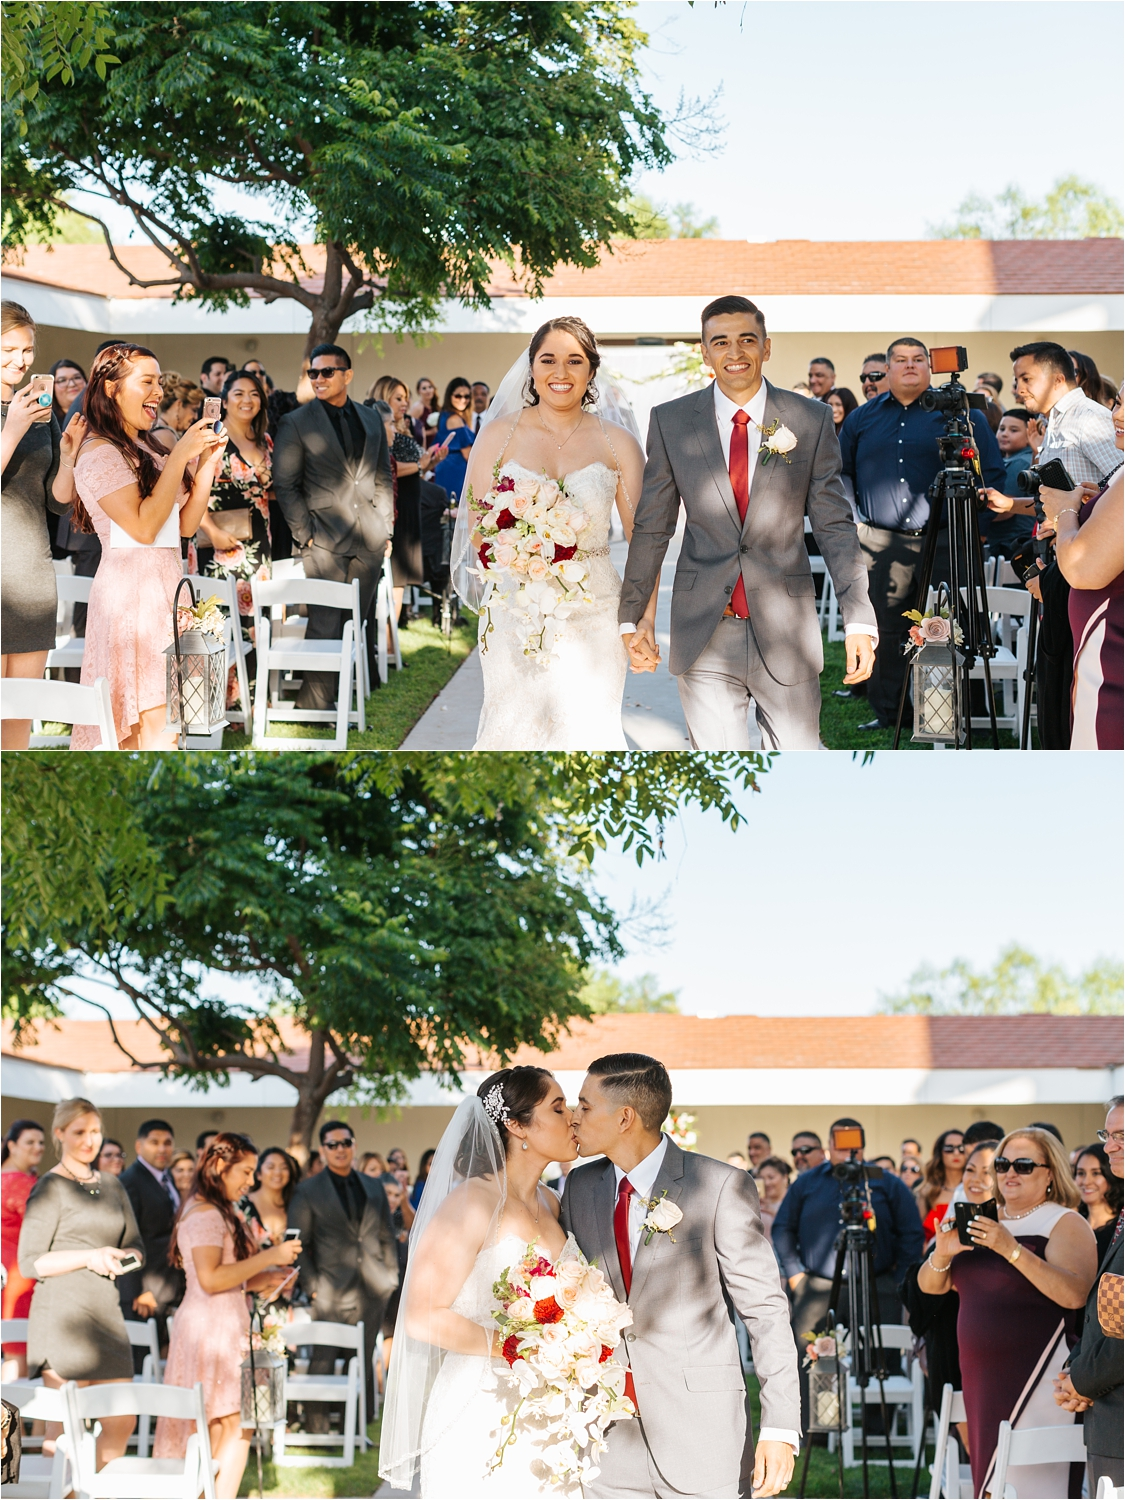 Bride and Groom Kiss at the end of the aisle - Wedding Ceremony Details - https://brittneyhannonphotography.com